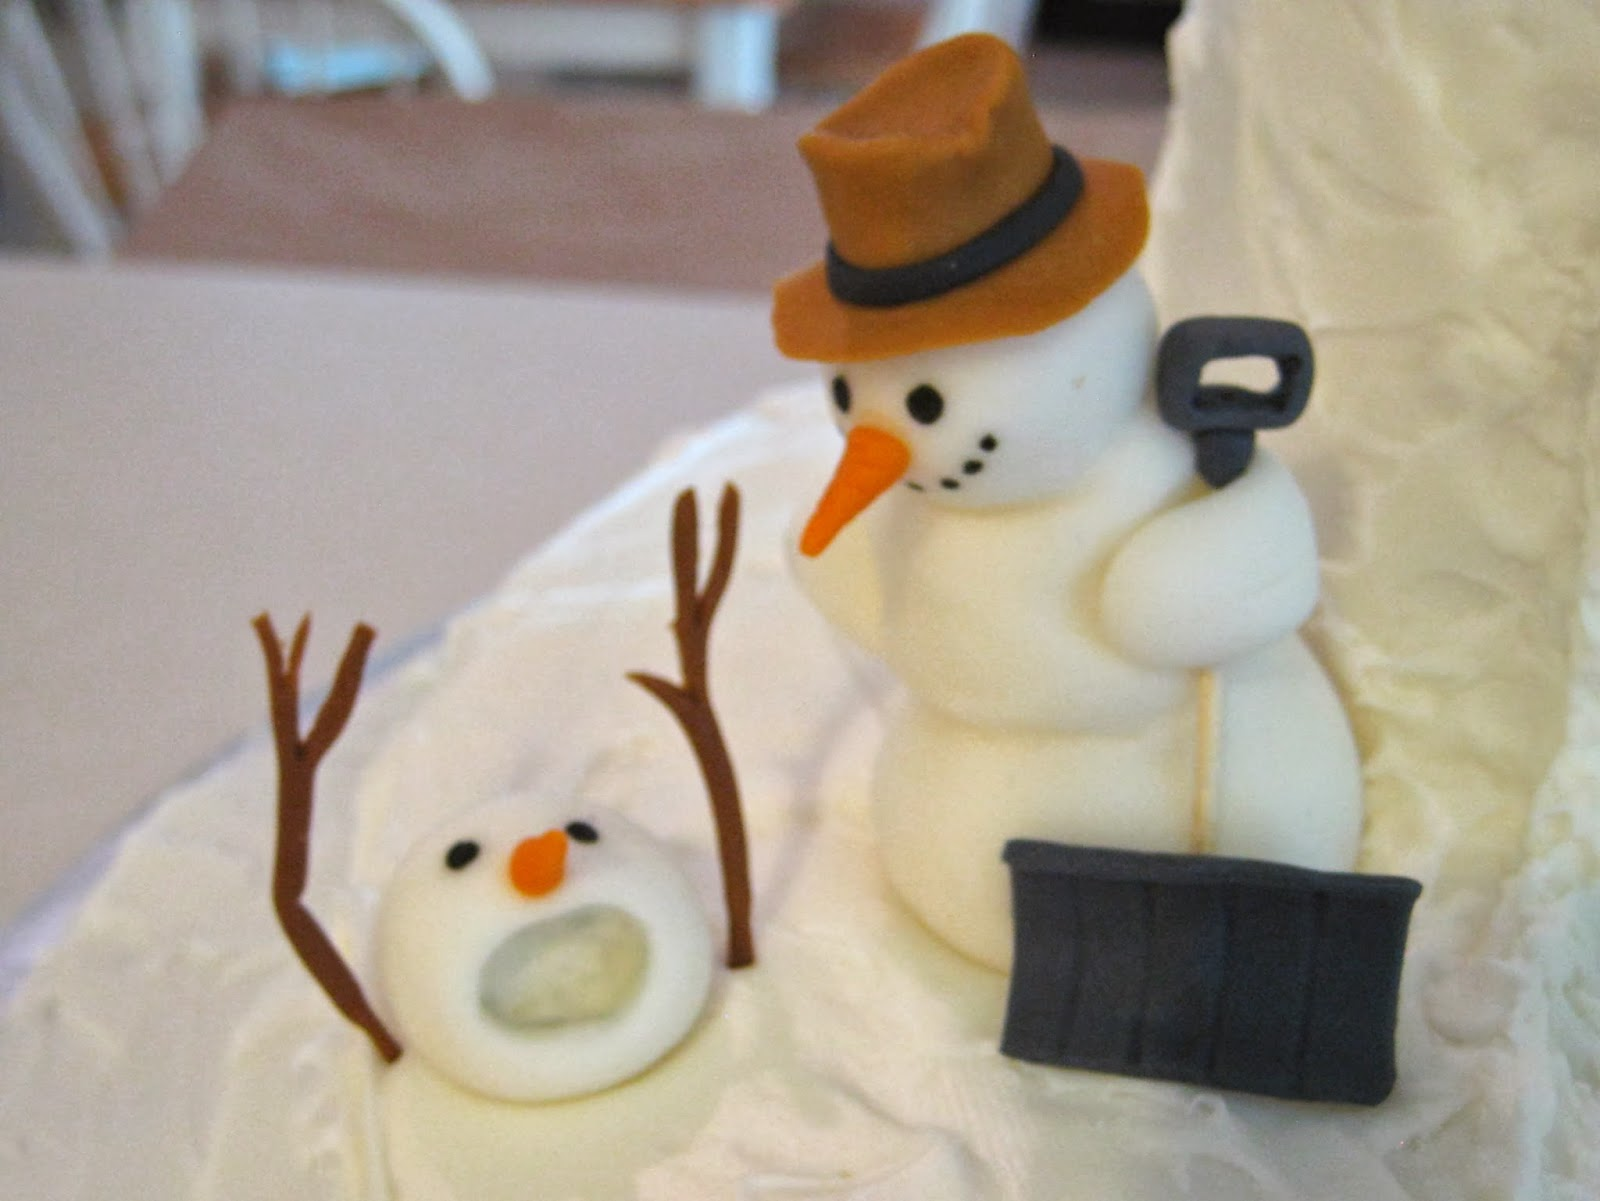 Calvin and Hobbes Snowmen Cake - Fondant Snowman with Shovel and Snowman Buried in Snow